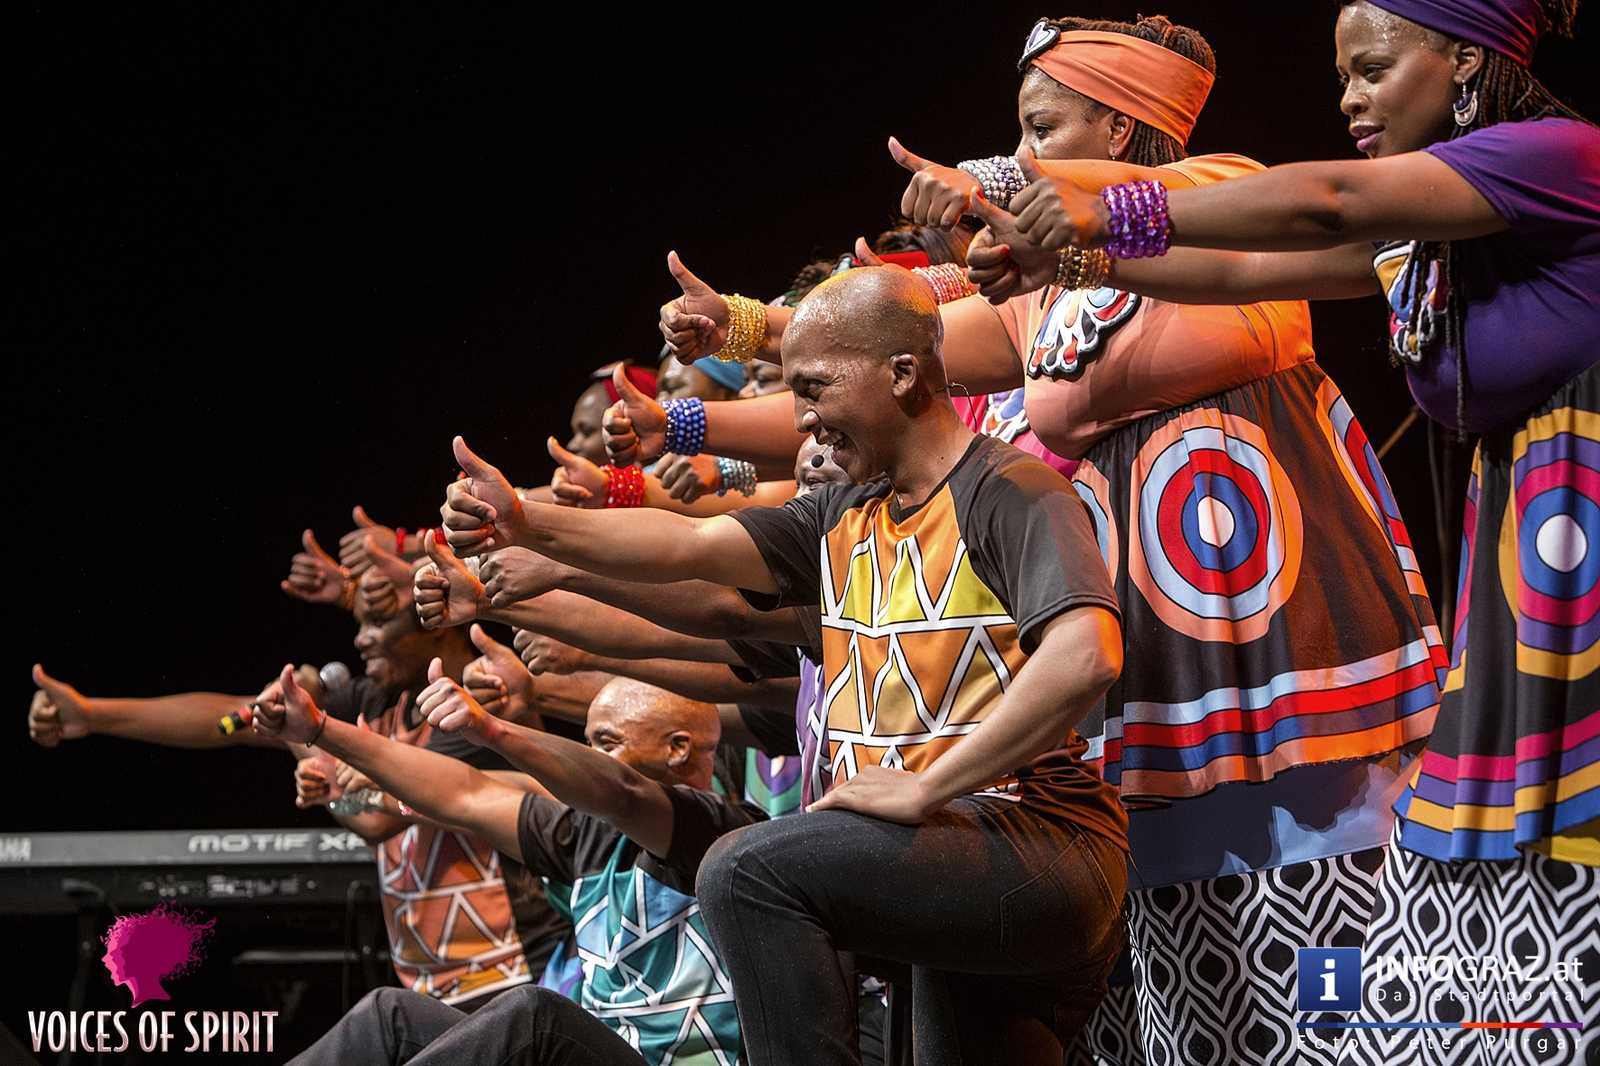 soweto gospel choir internationales chorfestival statdthalle graz voices of spirit eroeffnung festivals 2016 073